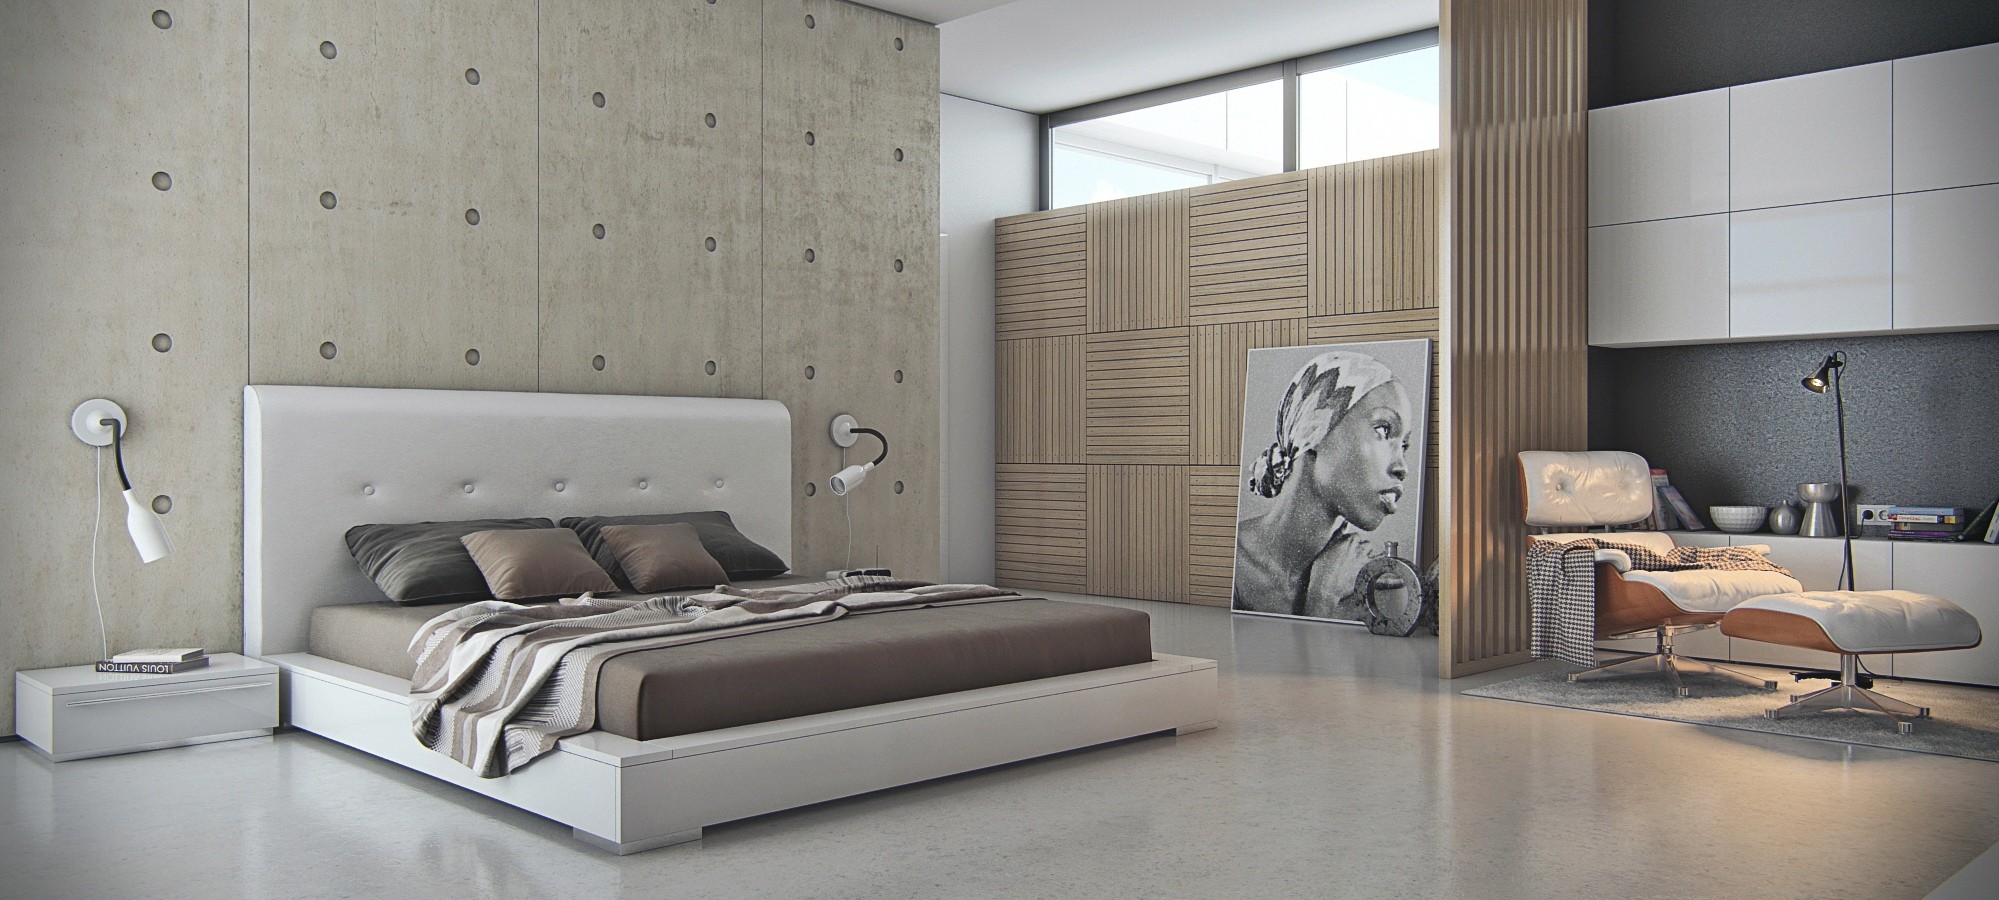 Concrete Bedroom Featre Wall